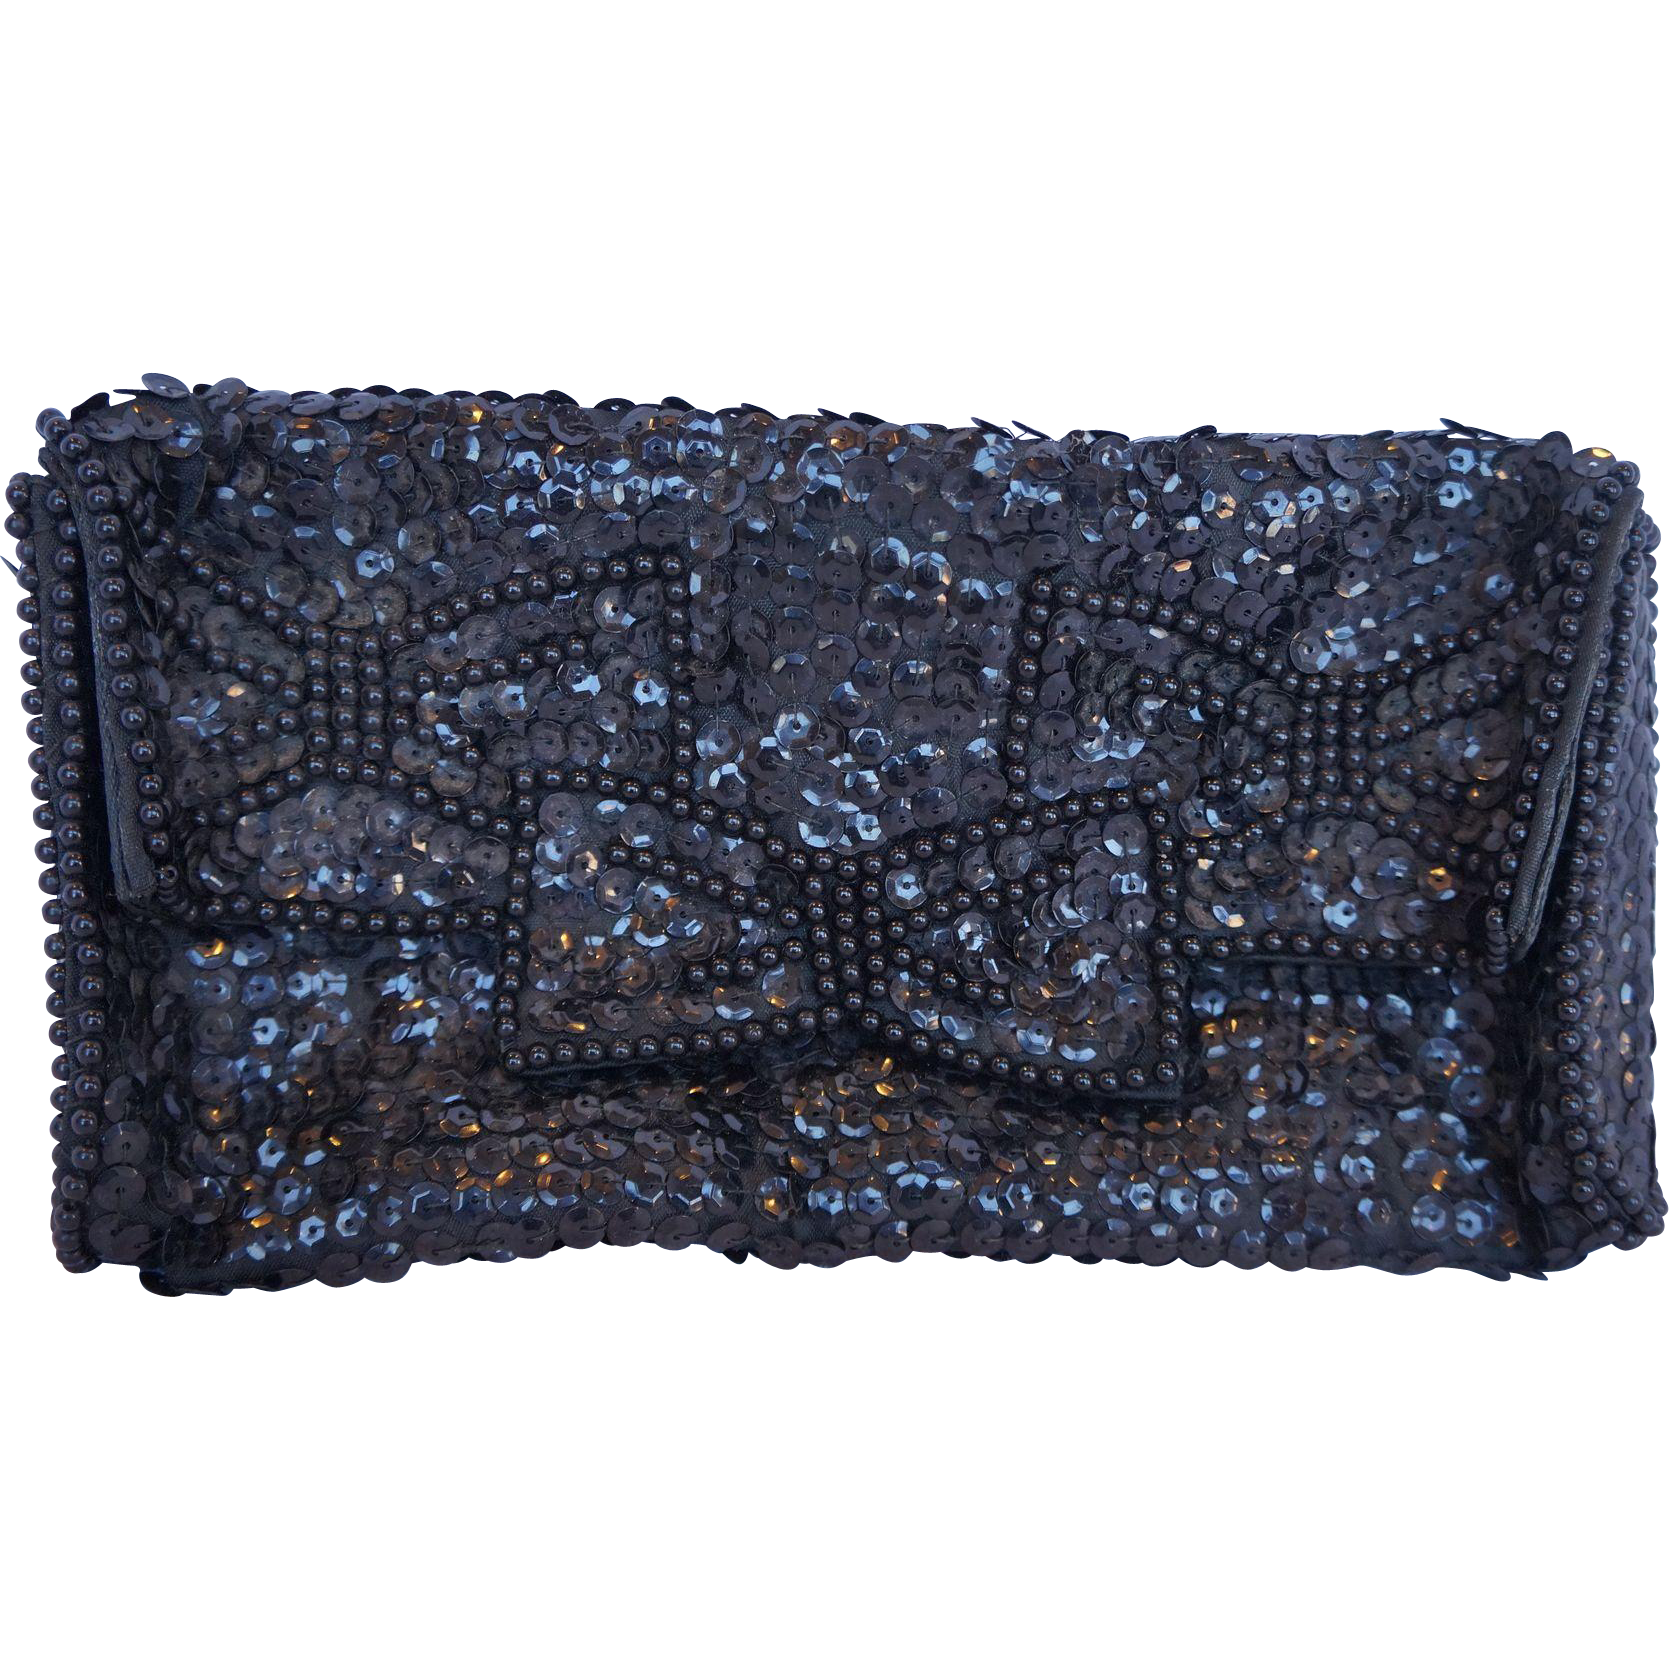 Black Sequins Satin Clutch Evening Bag 1960s